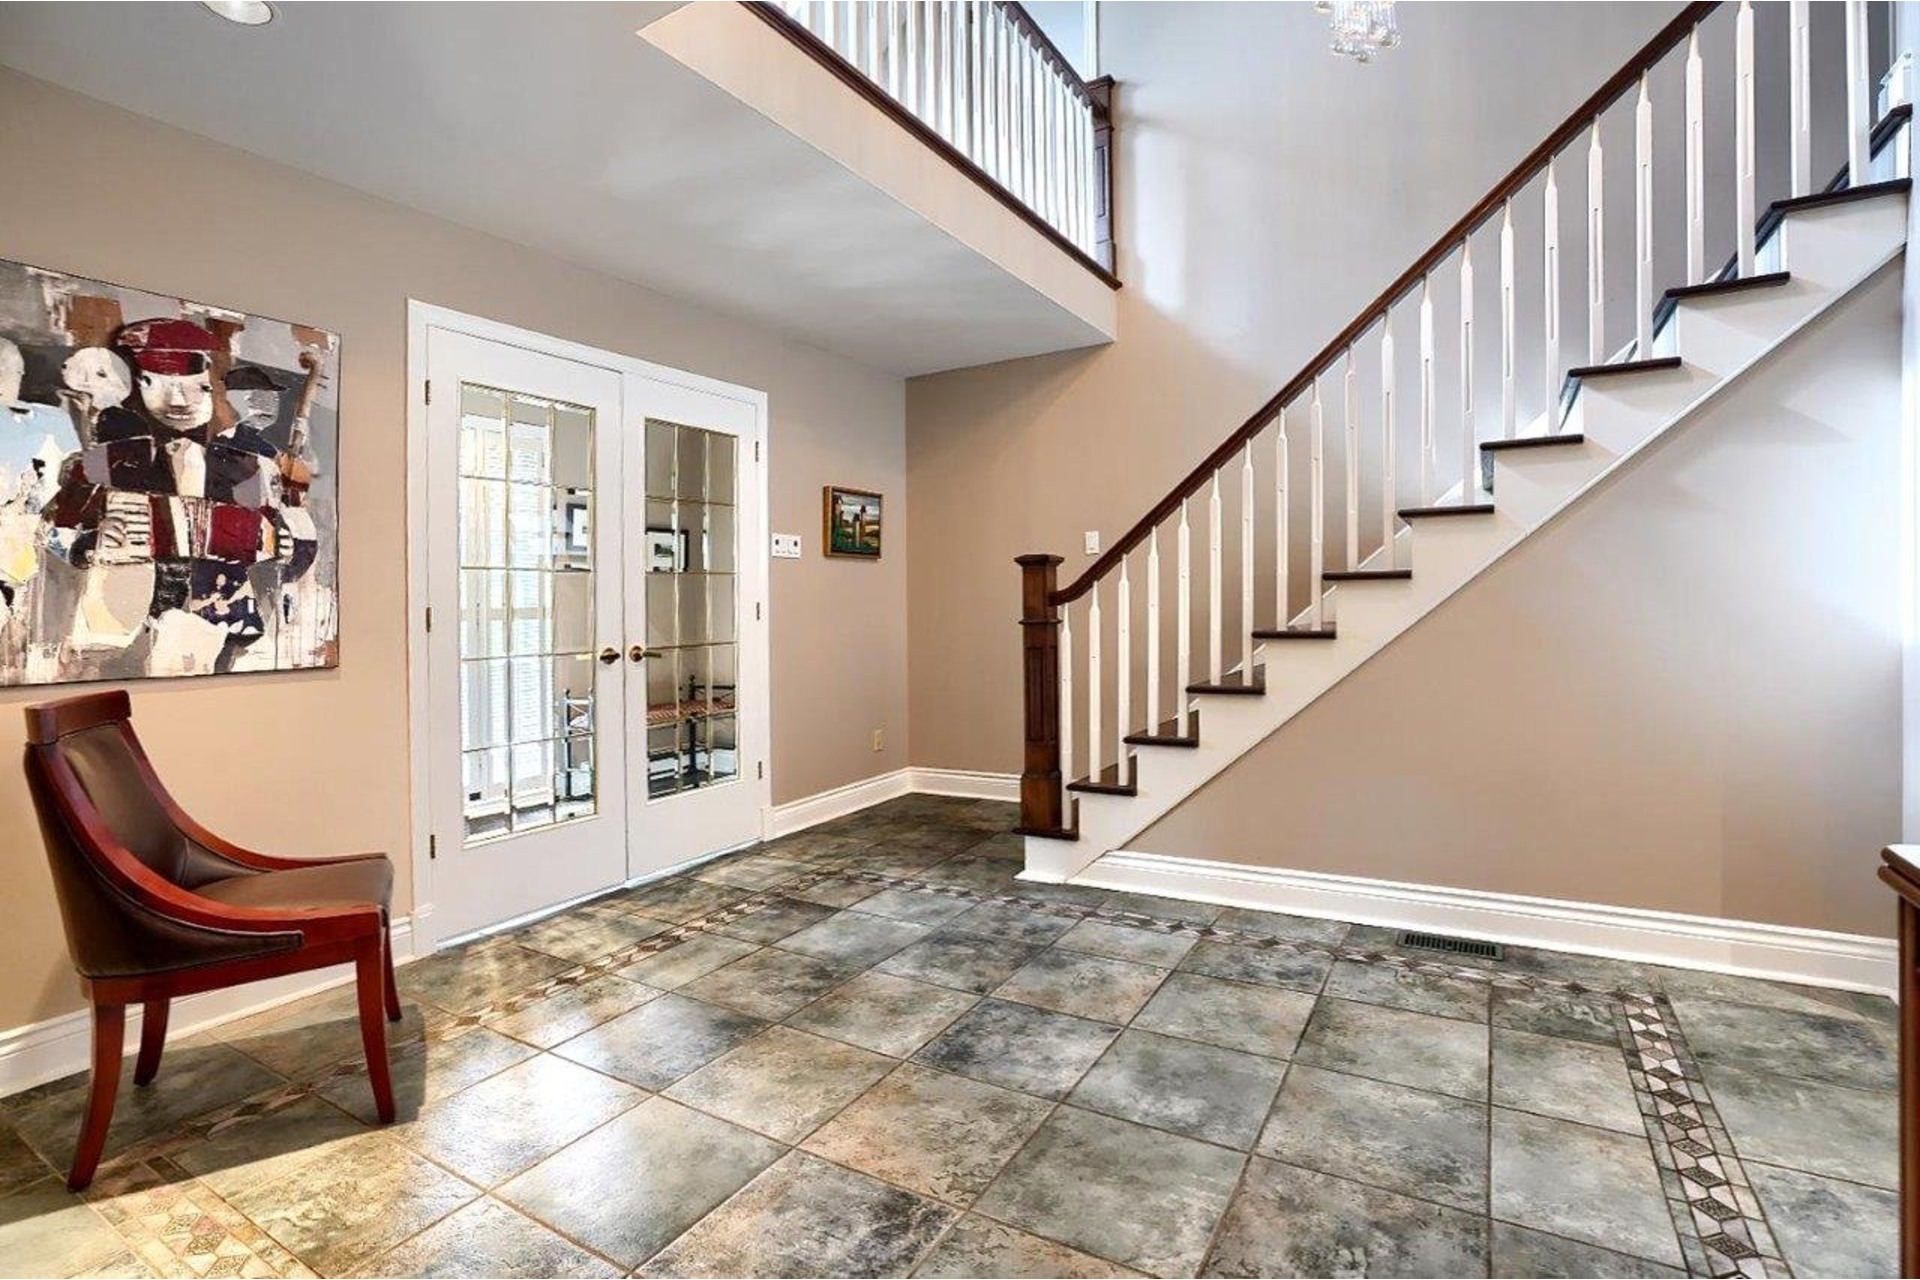 image 2 - House For sale Brossard - 10 rooms